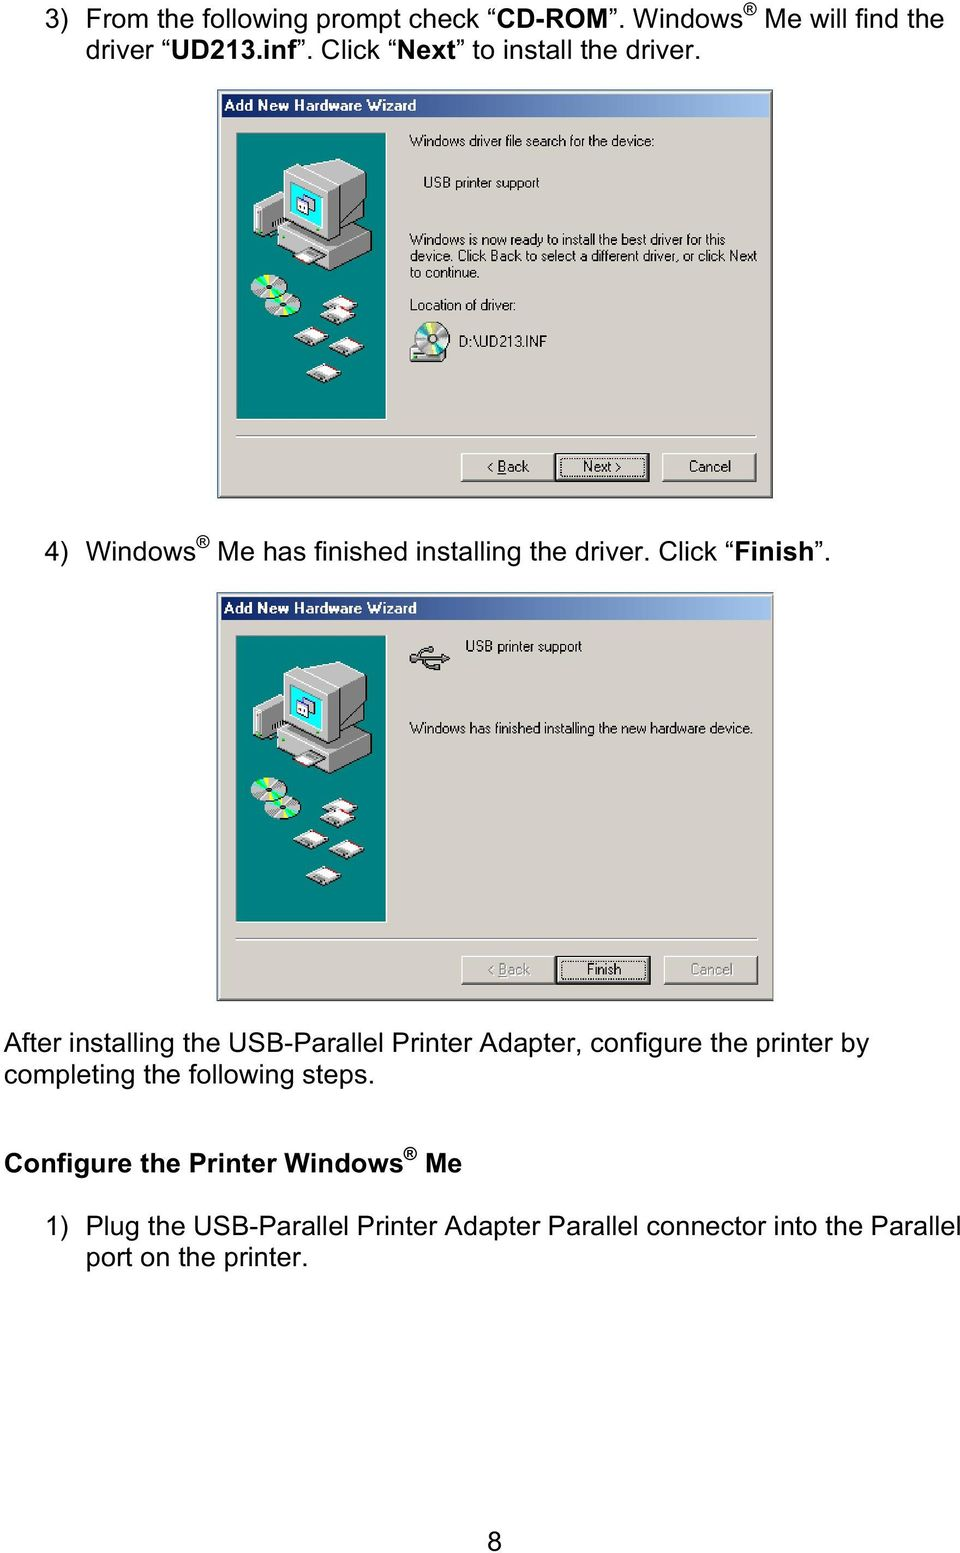 After installing the USB-Parallel Printer Adapter, configure the printer by completing the following steps.